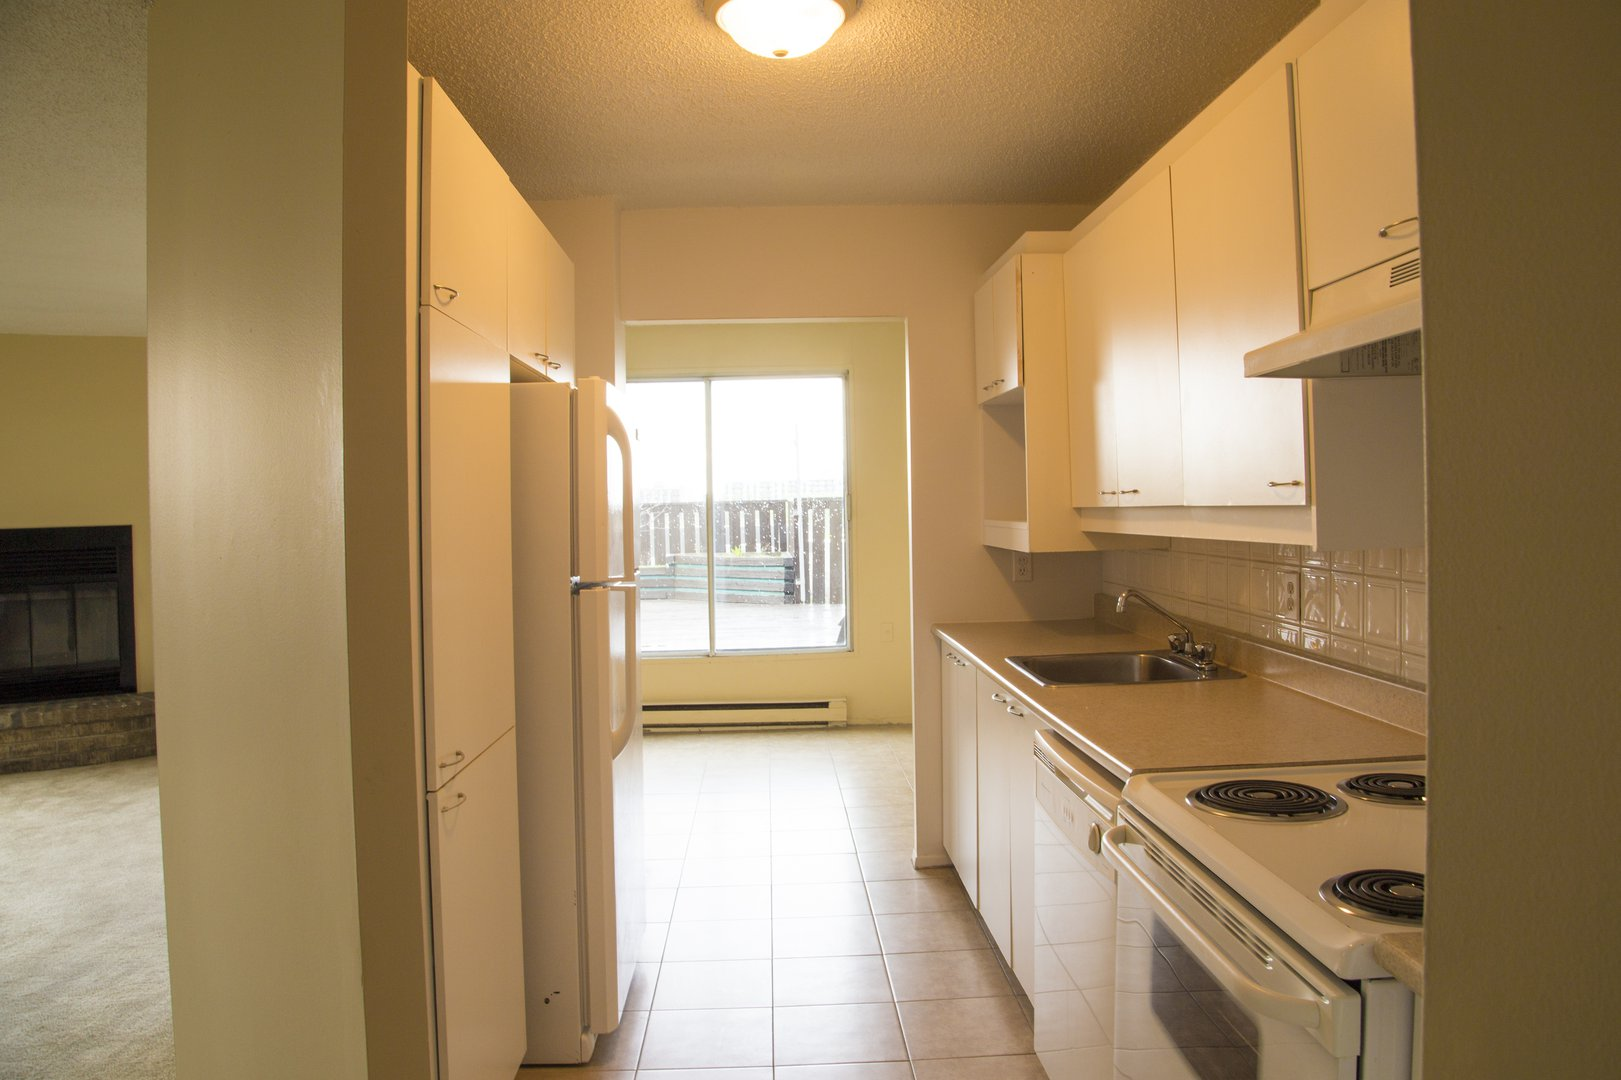 High-Rise Apartment for rent at 50 Quintin, suite 111, Ville Saint-Laurent, QC. This is the kitchen with tile floor, carpet, fireplace and natural light.